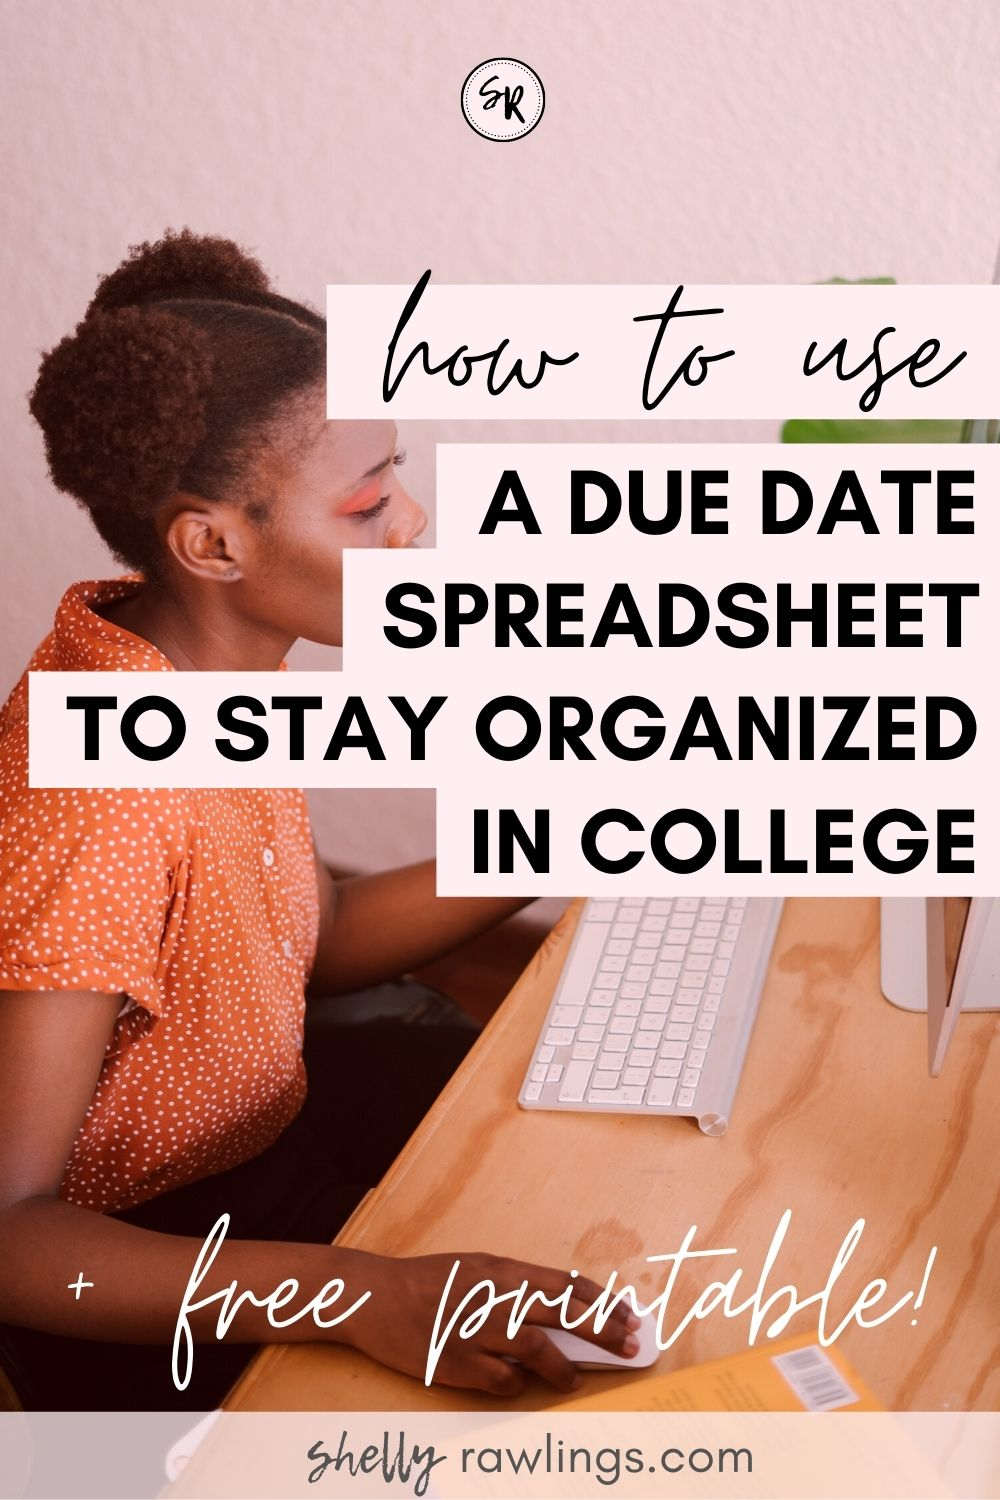 How to Use a Due Date Spreadsheet to Stay Organized in College (Plus Free Printable!) on ShellyRawlings.com